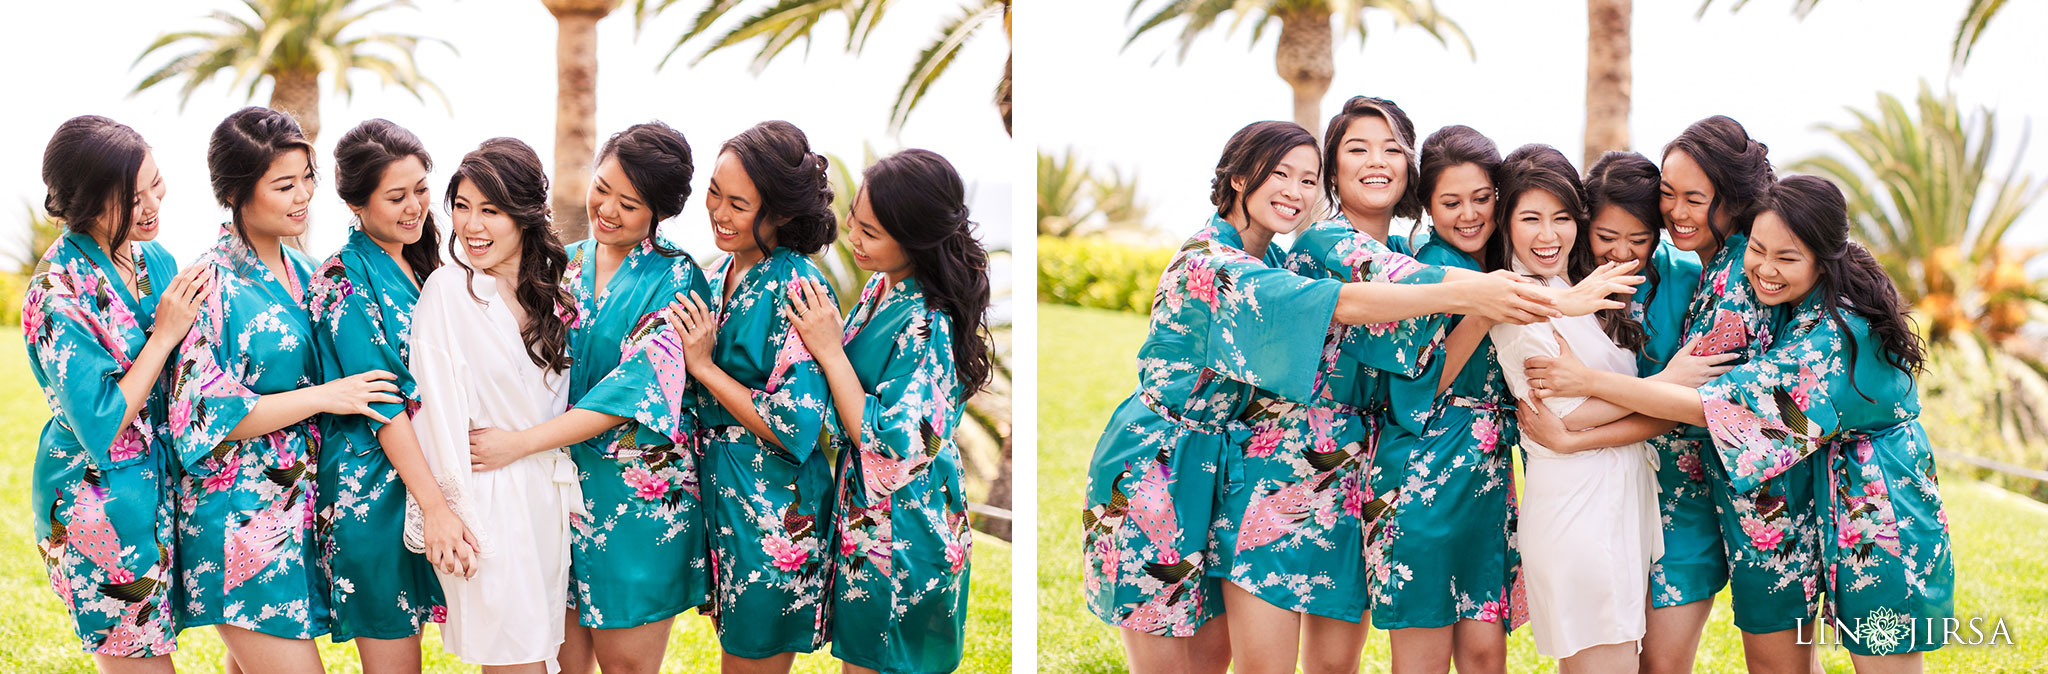 04 bel air bay club malibu bridesmaids wedding photography